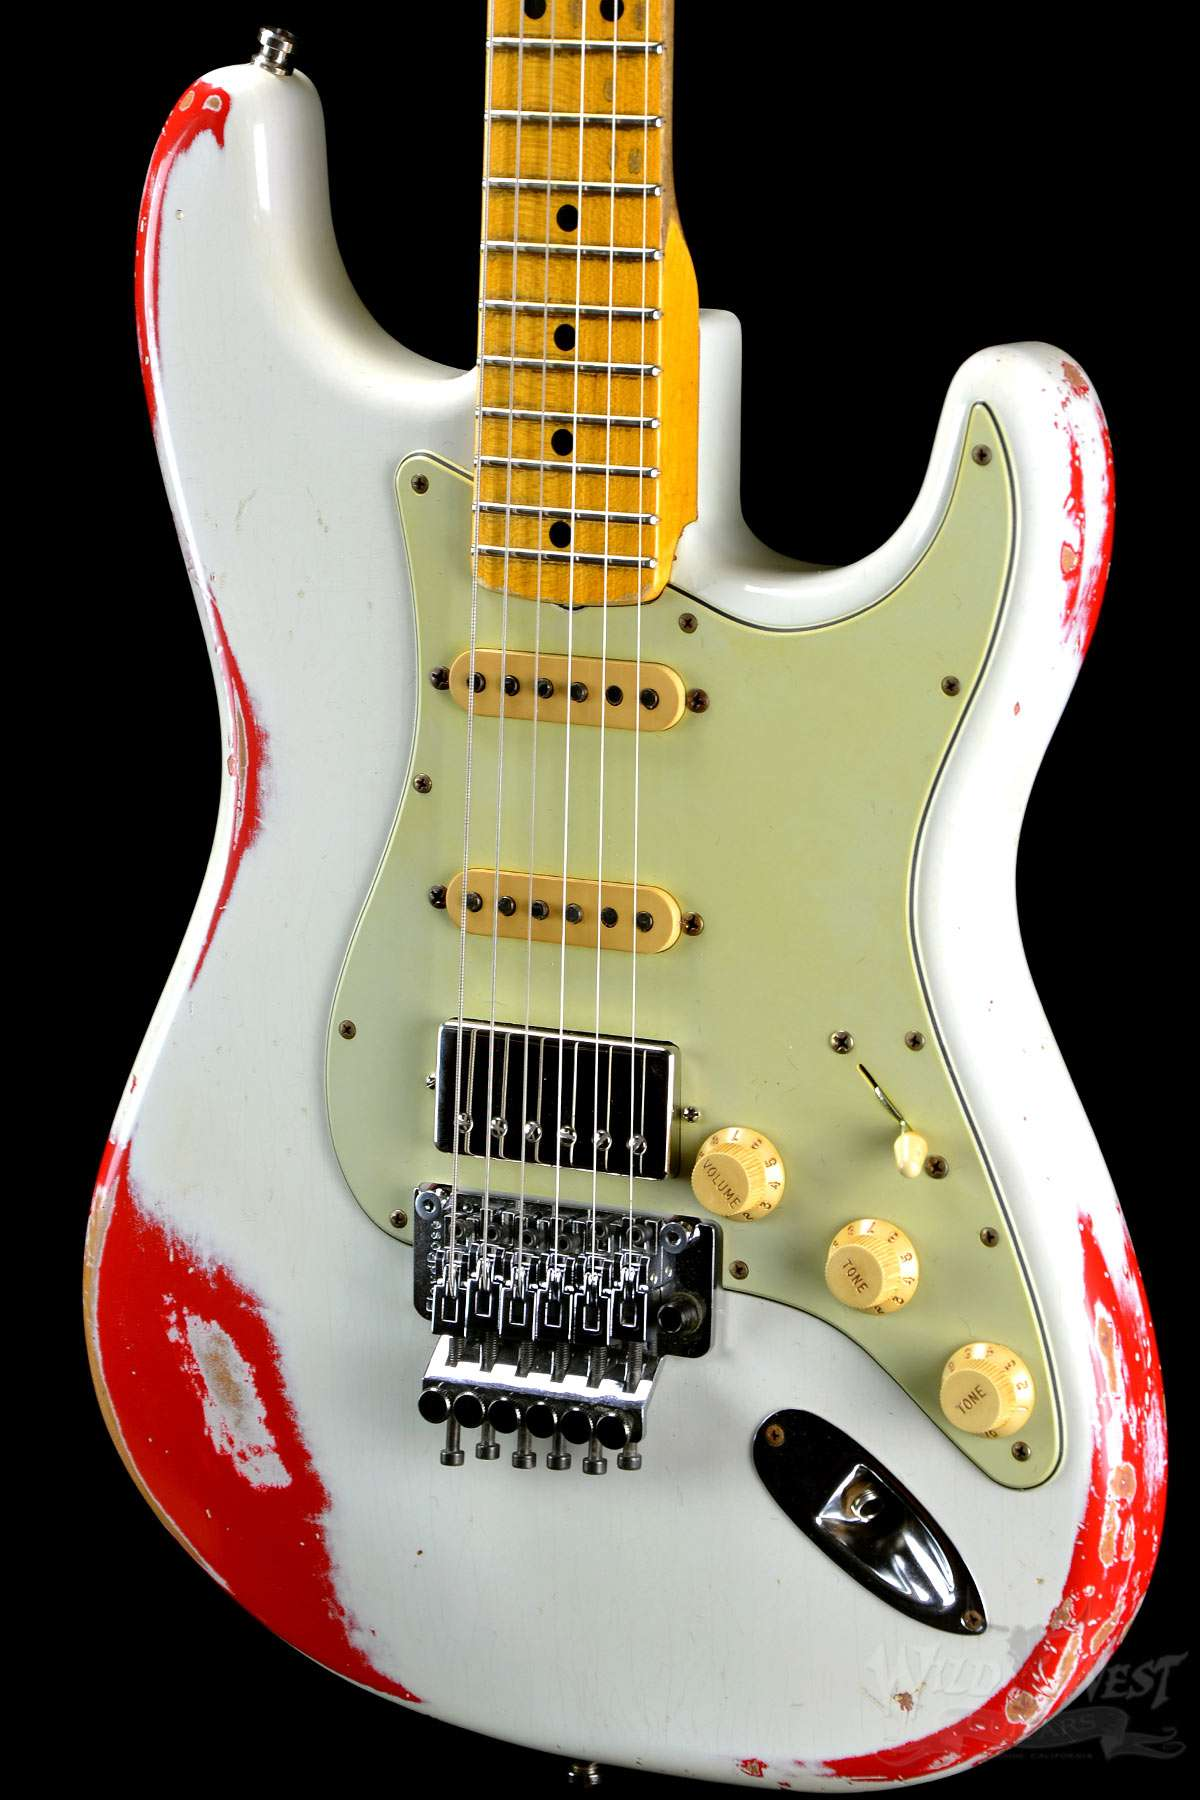 fender 1960 strat heavy relic white lightning olympic white over fiesta red preowned wild. Black Bedroom Furniture Sets. Home Design Ideas